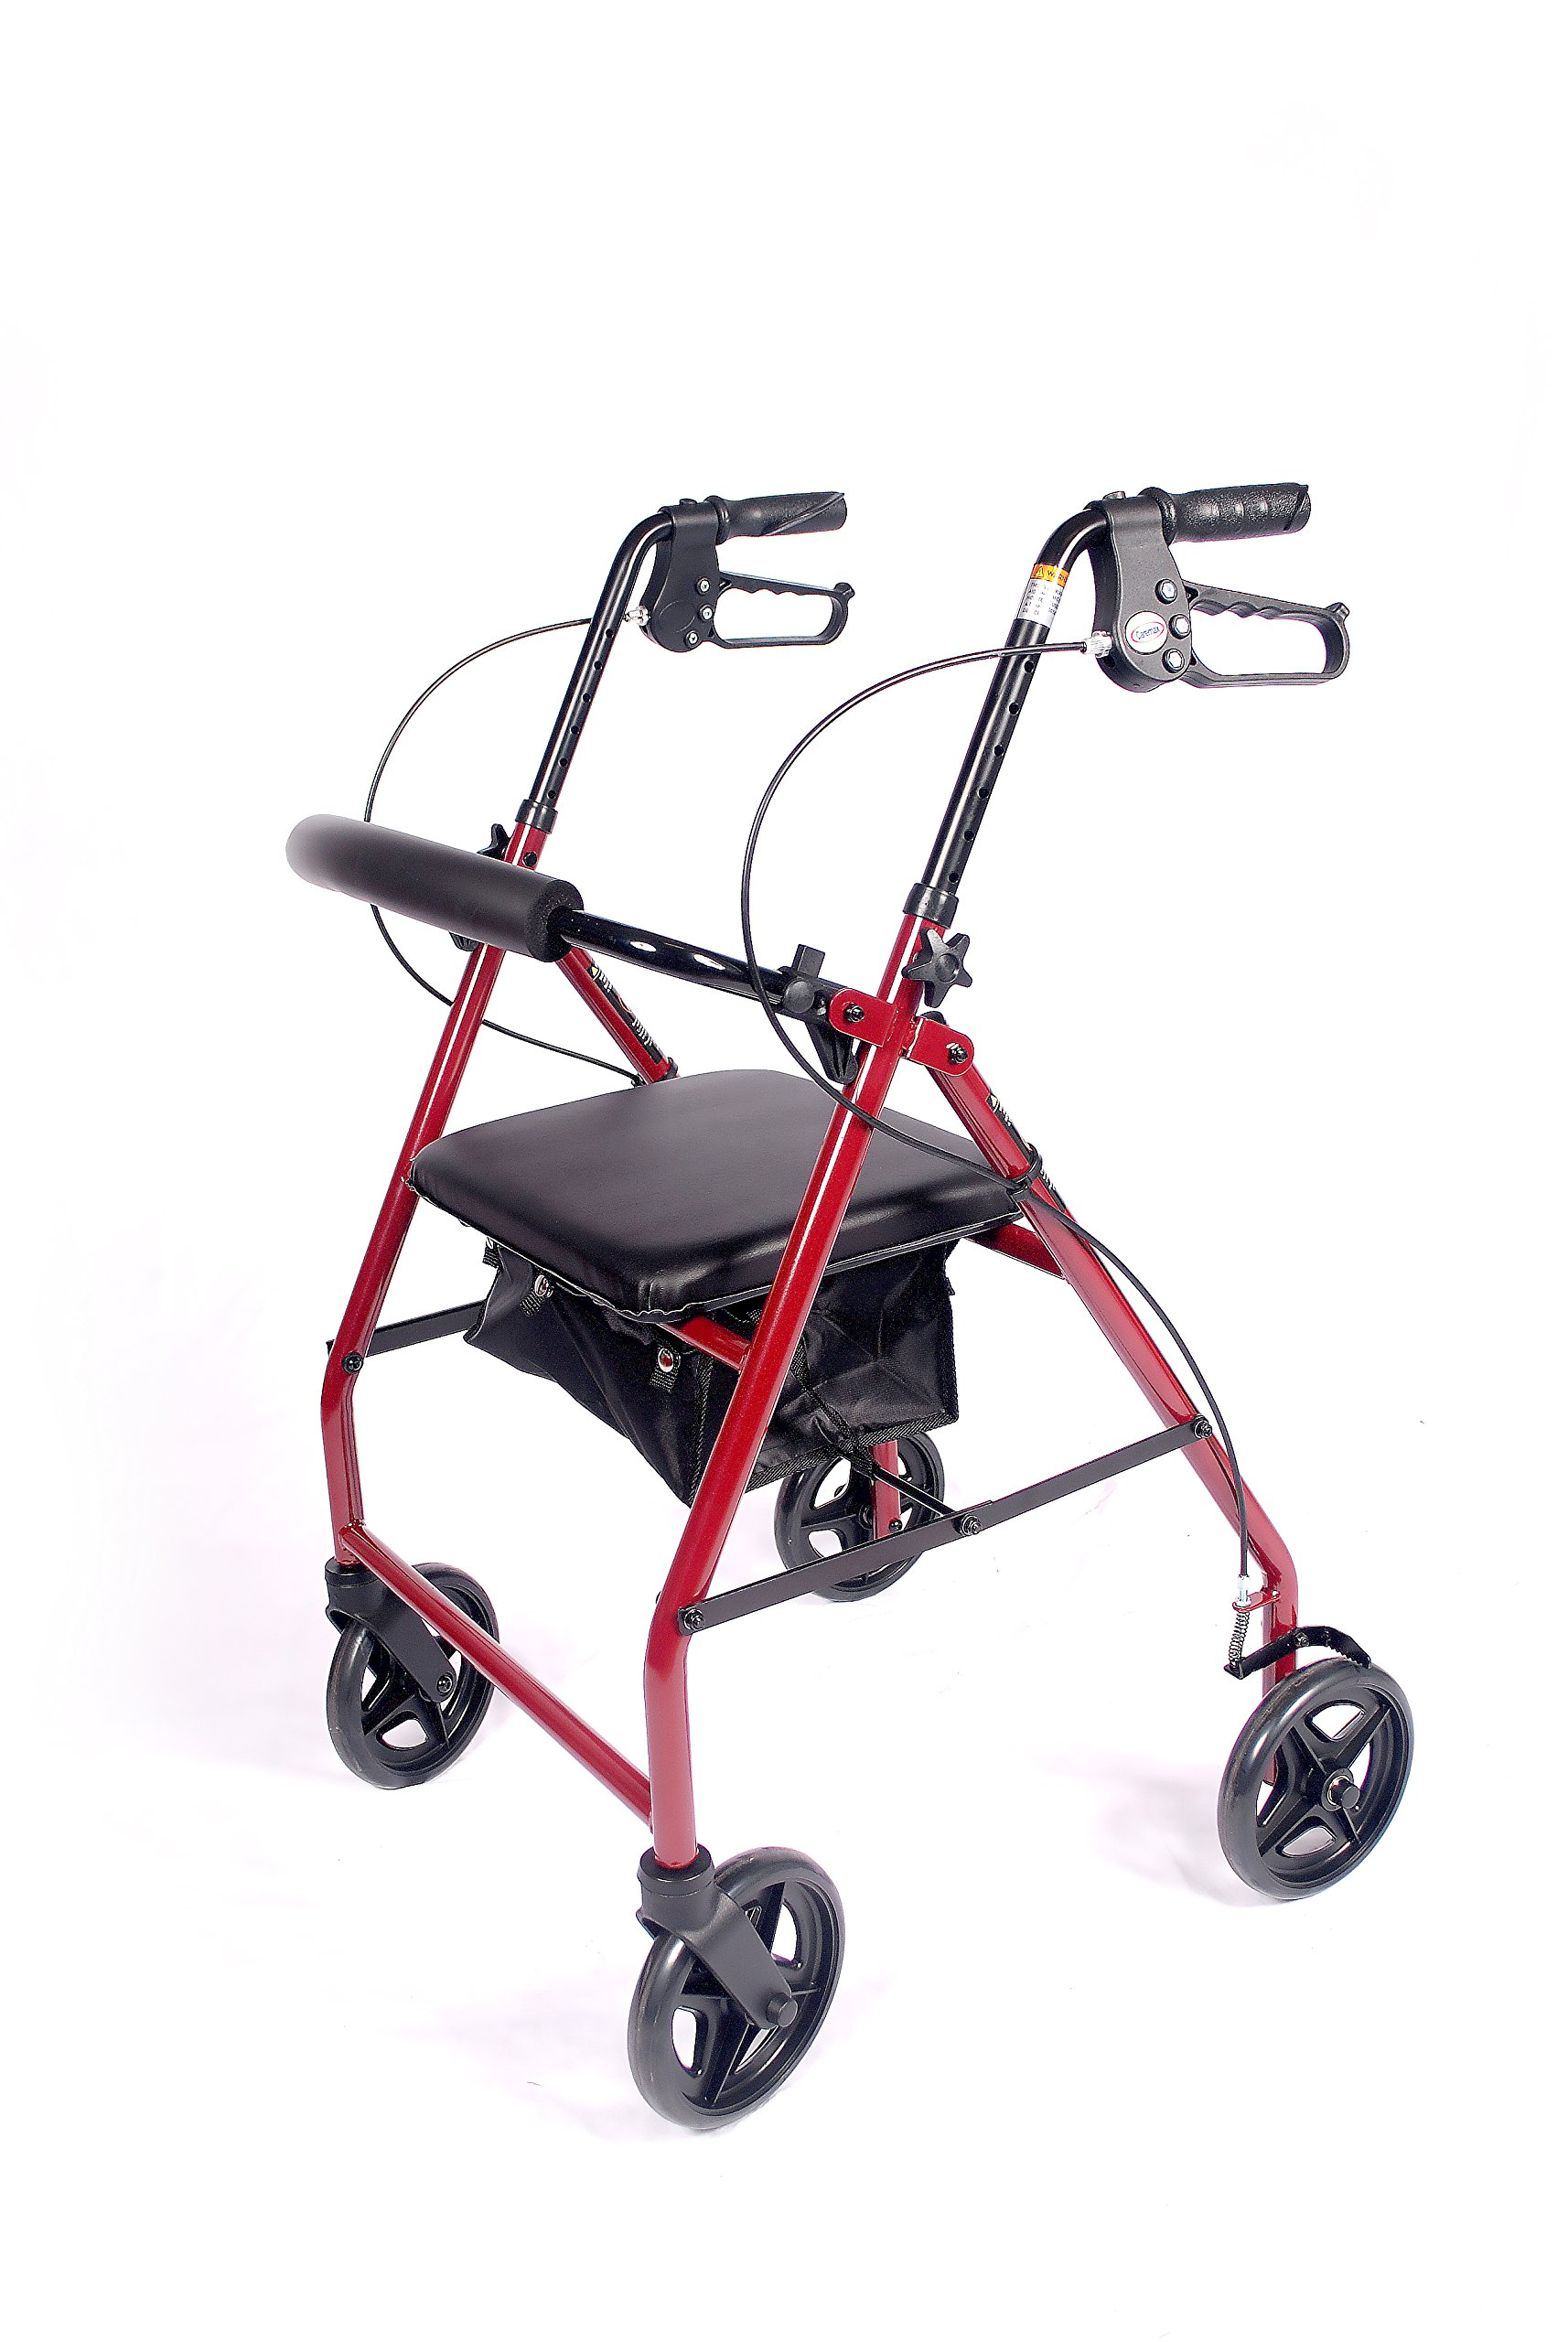 Caremax Aluminum Rollator Walker Mobility Aid with 300 lb. Weight Capacity